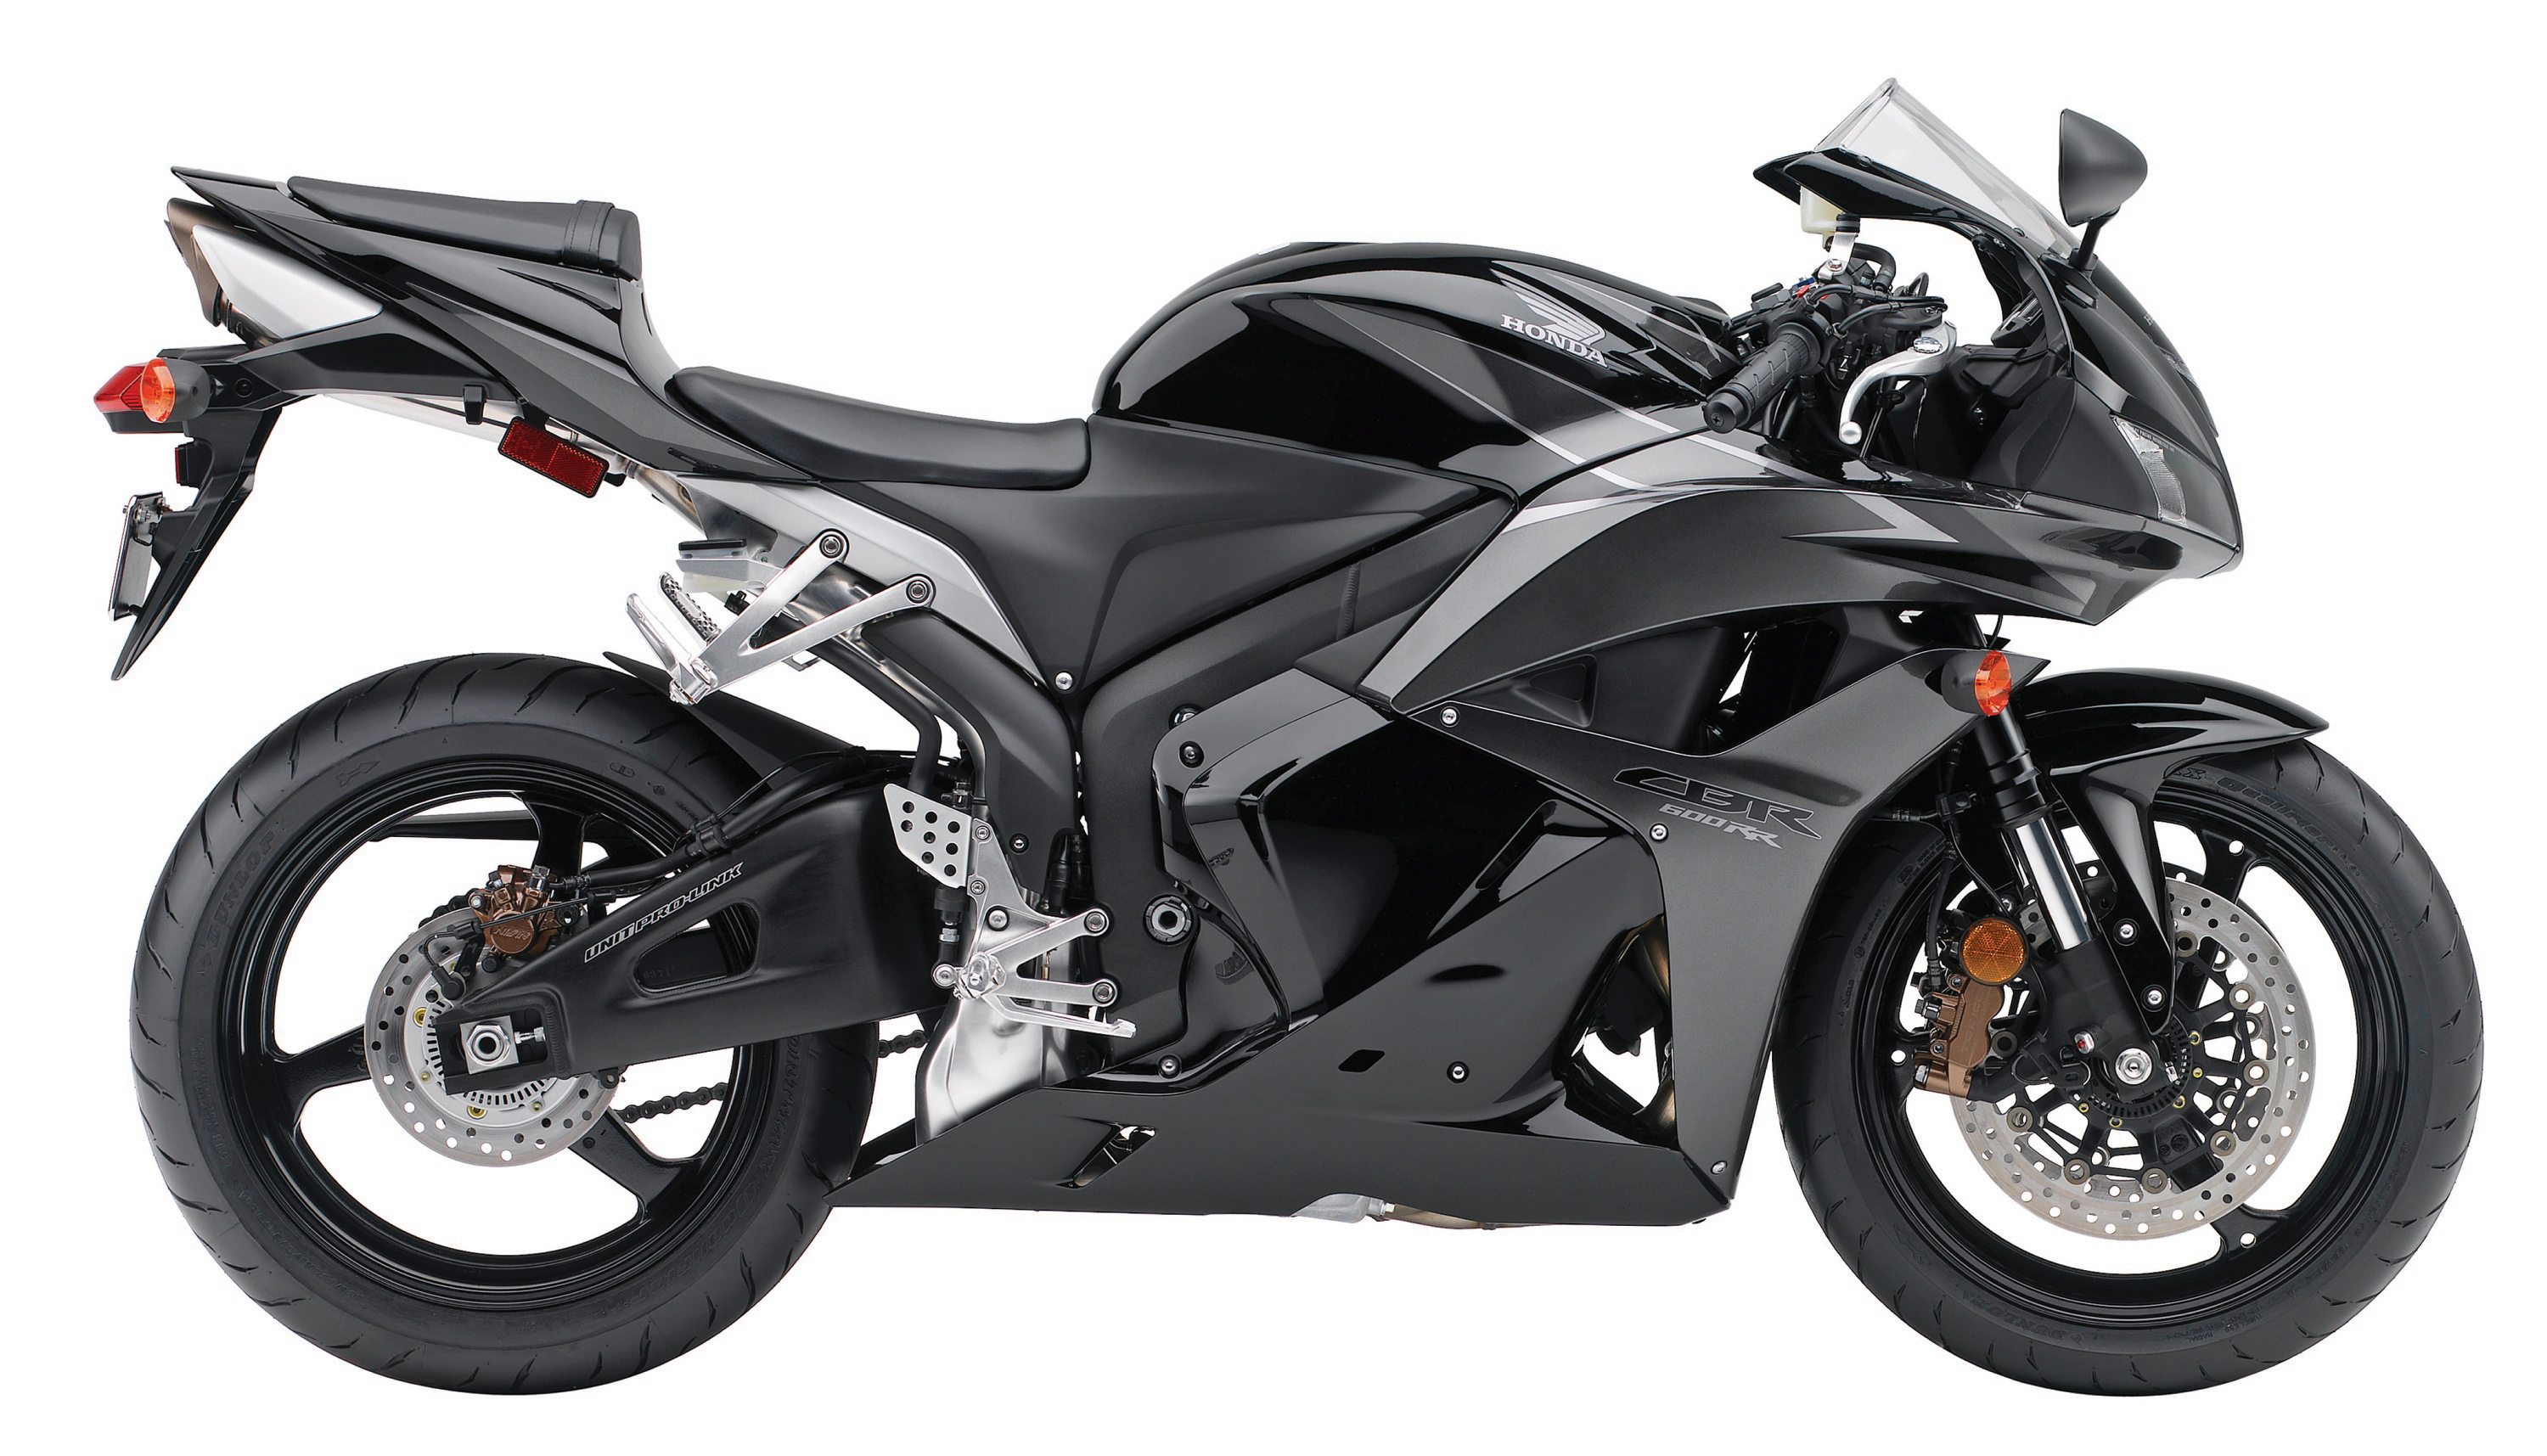 2009 Honda CBR600RR/ABS Review - Top Speed